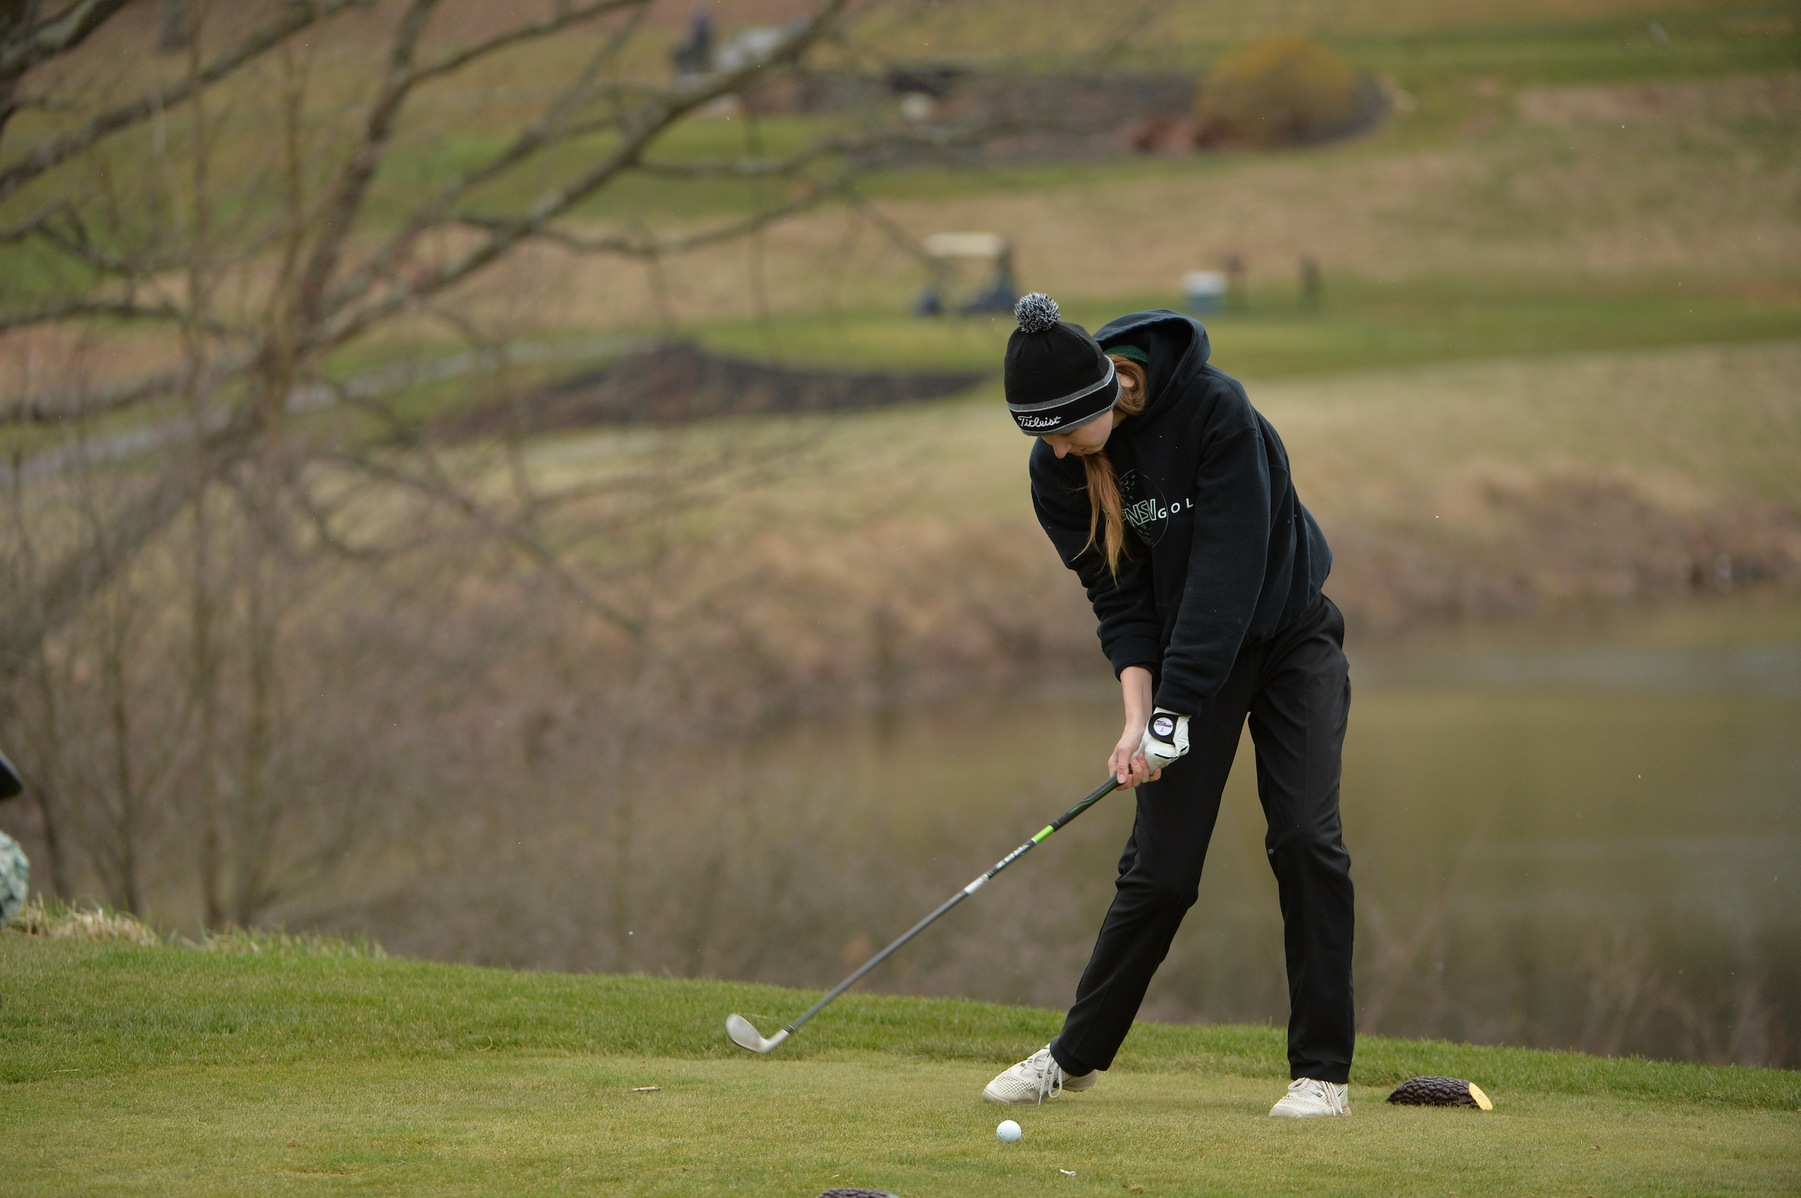 Women's Golf Takes Third at Alvernia Spring Invite, Kline Finishes Tied for Eighth